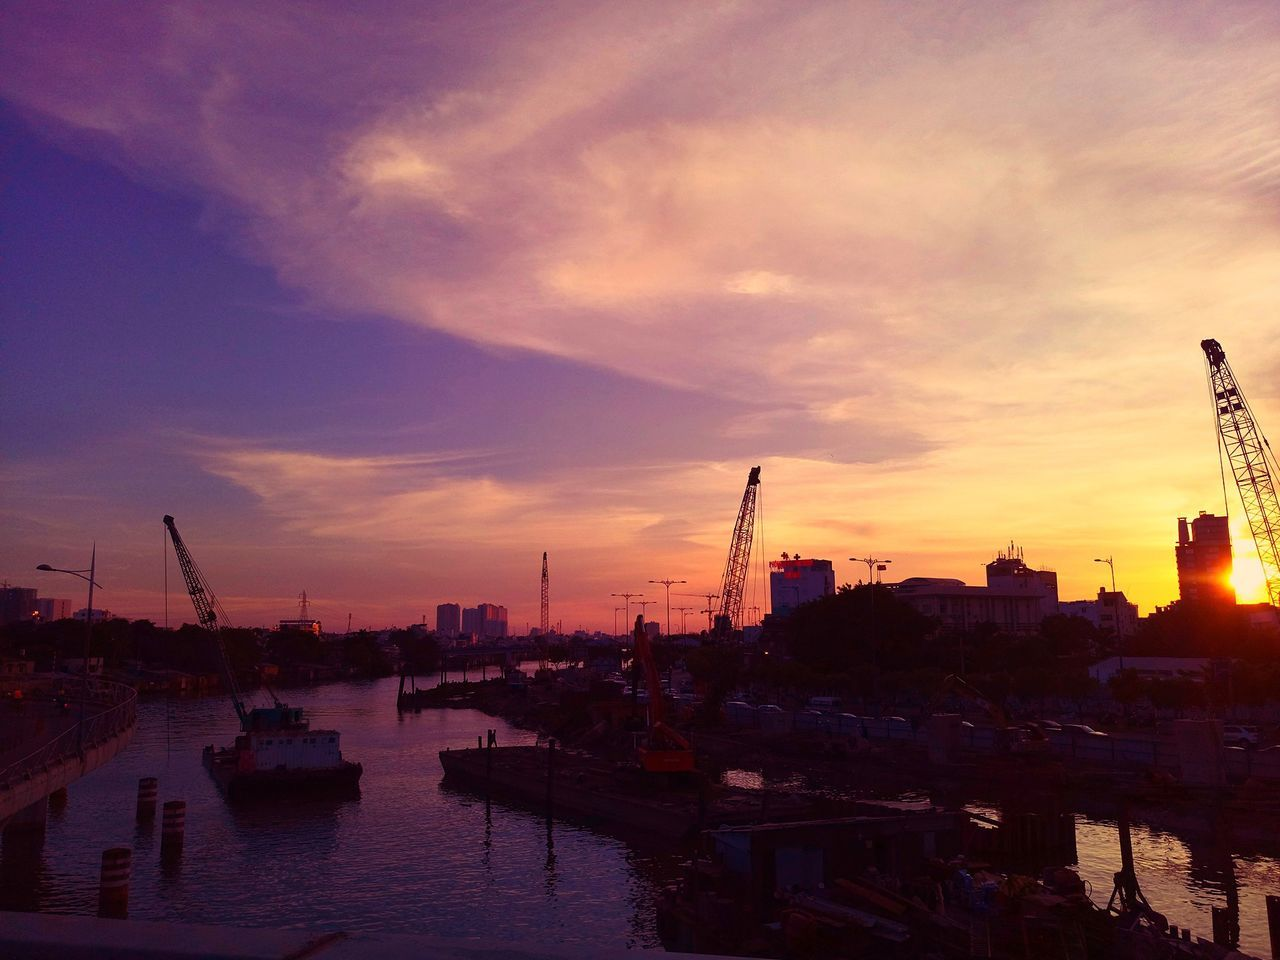 sunset, sky, cloud - sky, orange color, nautical vessel, built structure, architecture, building exterior, no people, transportation, silhouette, crane - construction machinery, city, water, crane, mode of transport, industry, travel destinations, outdoors, commercial dock, harbor, cityscape, smoke stack, nature, factory, shipyard, day